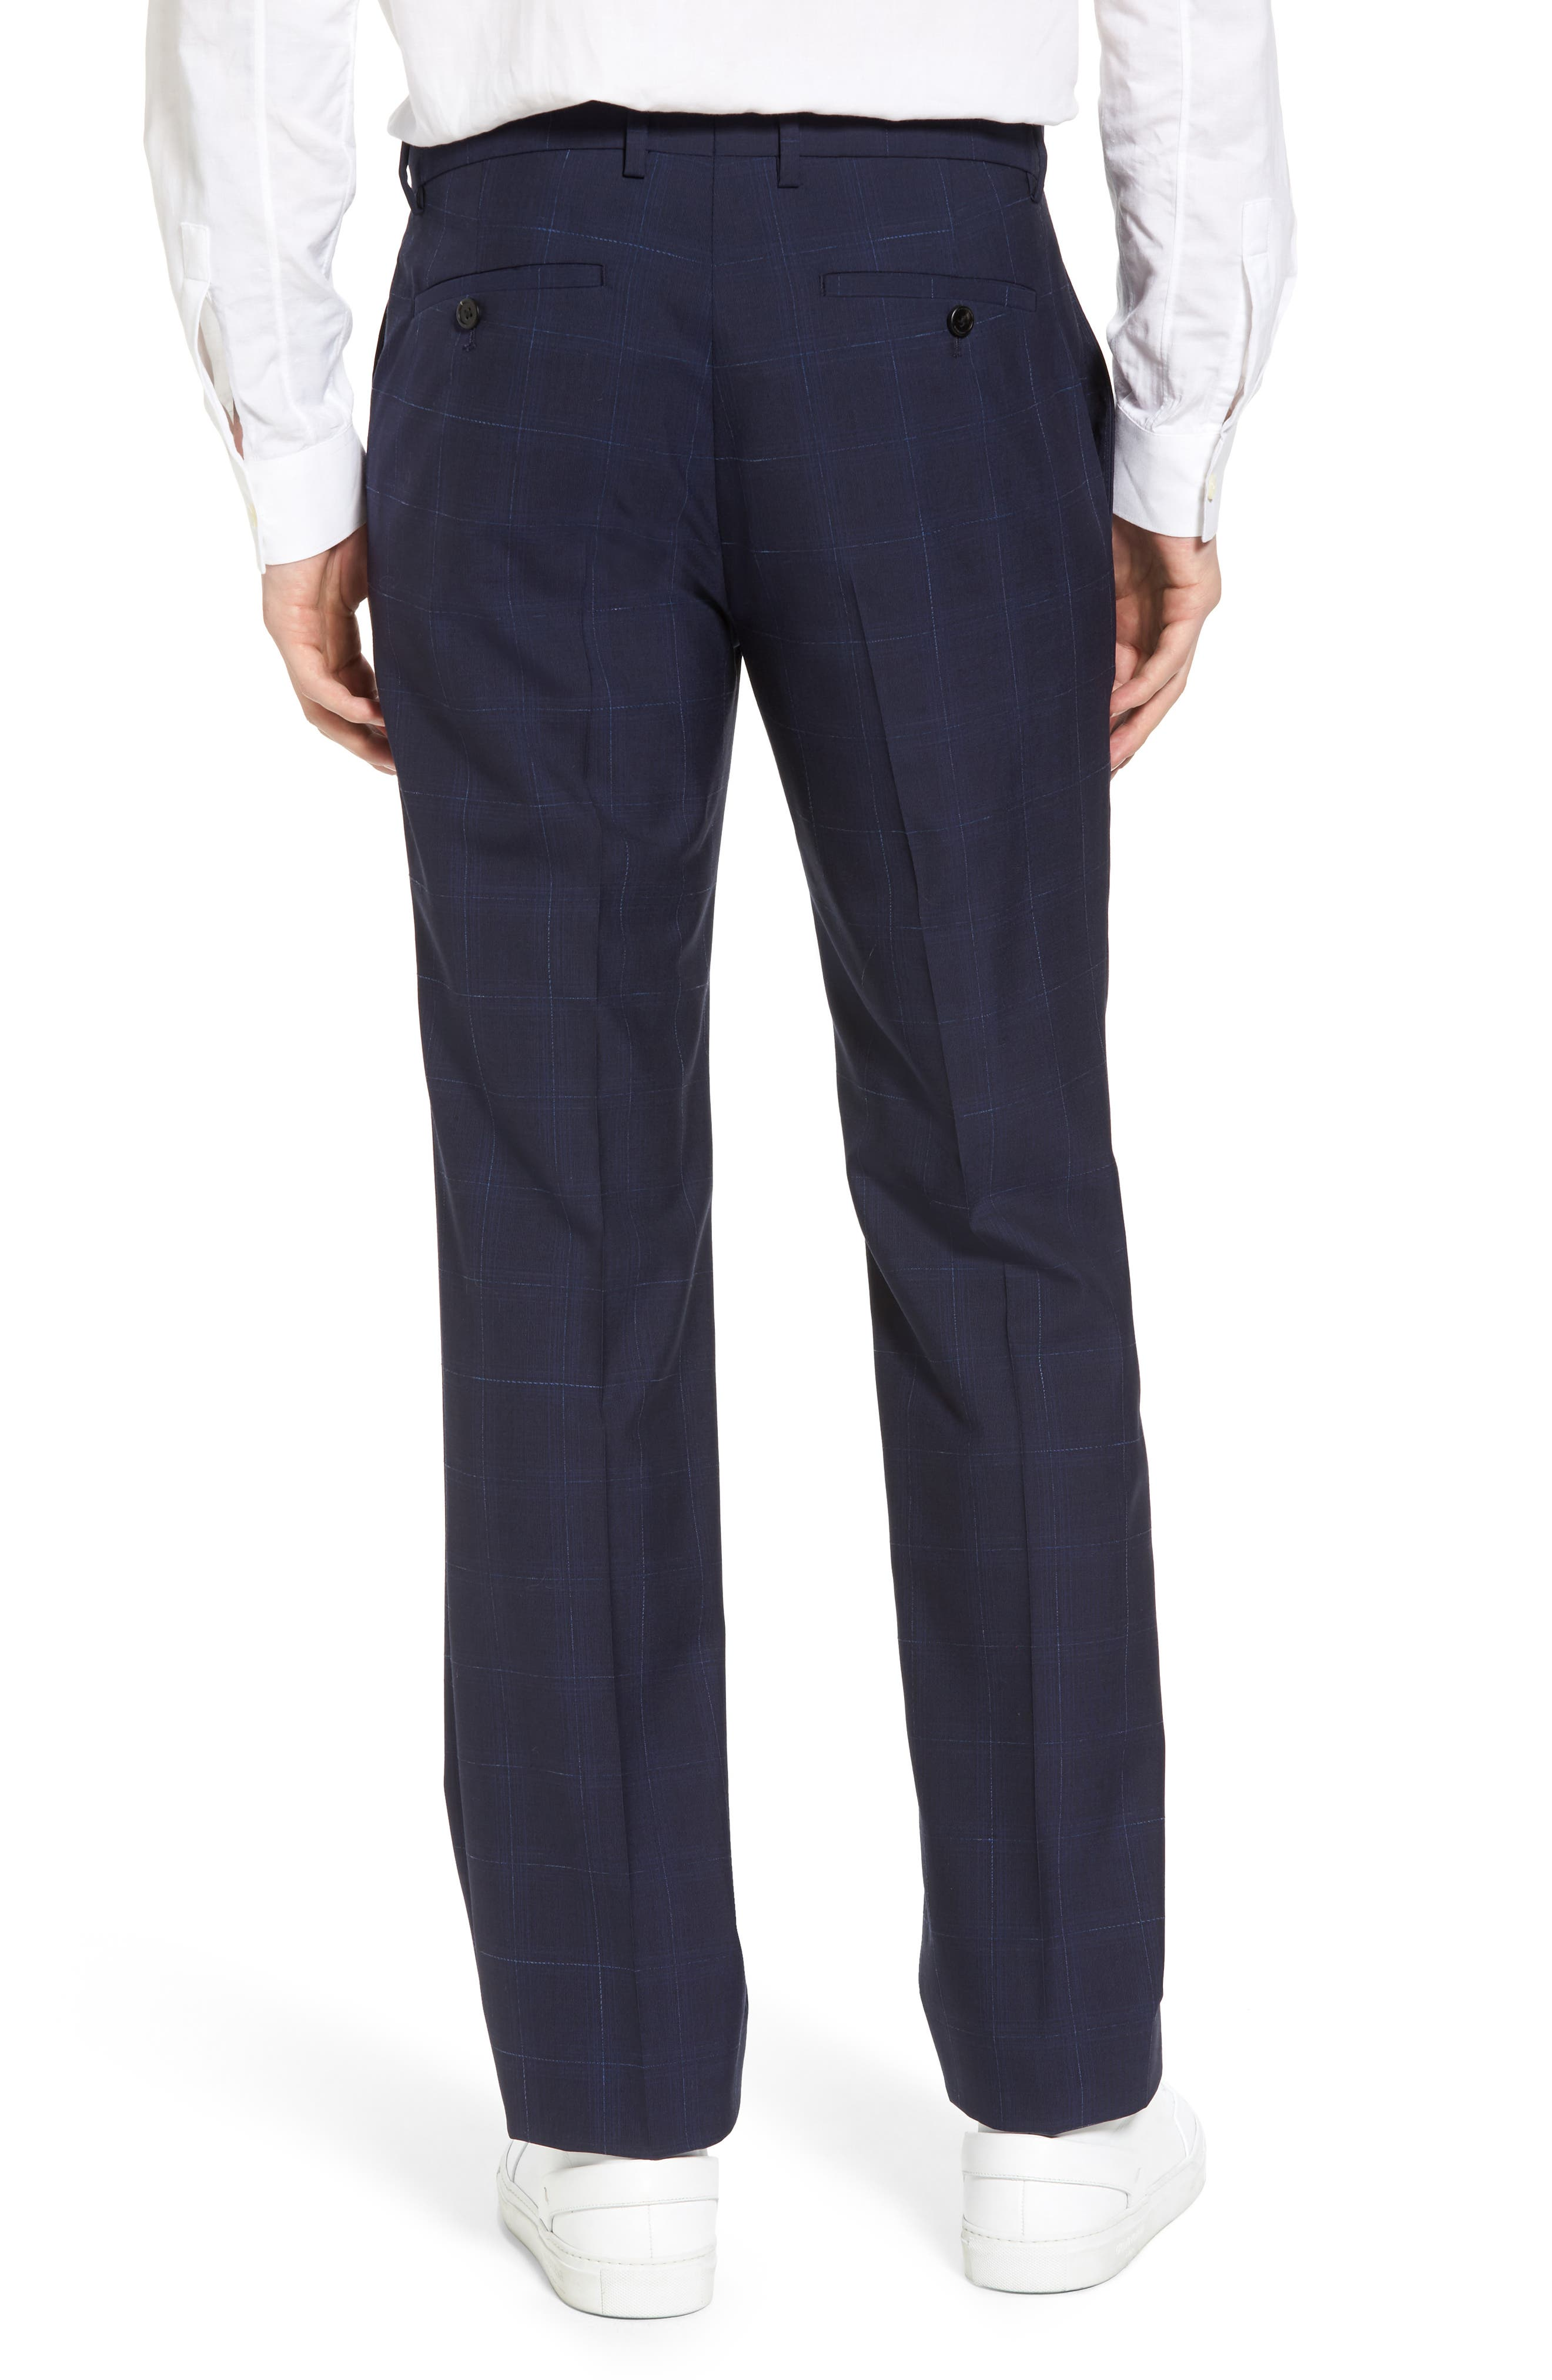 Marlo Flat Front Plaid Wool Trousers,                             Alternate thumbnail 2, color,                             497